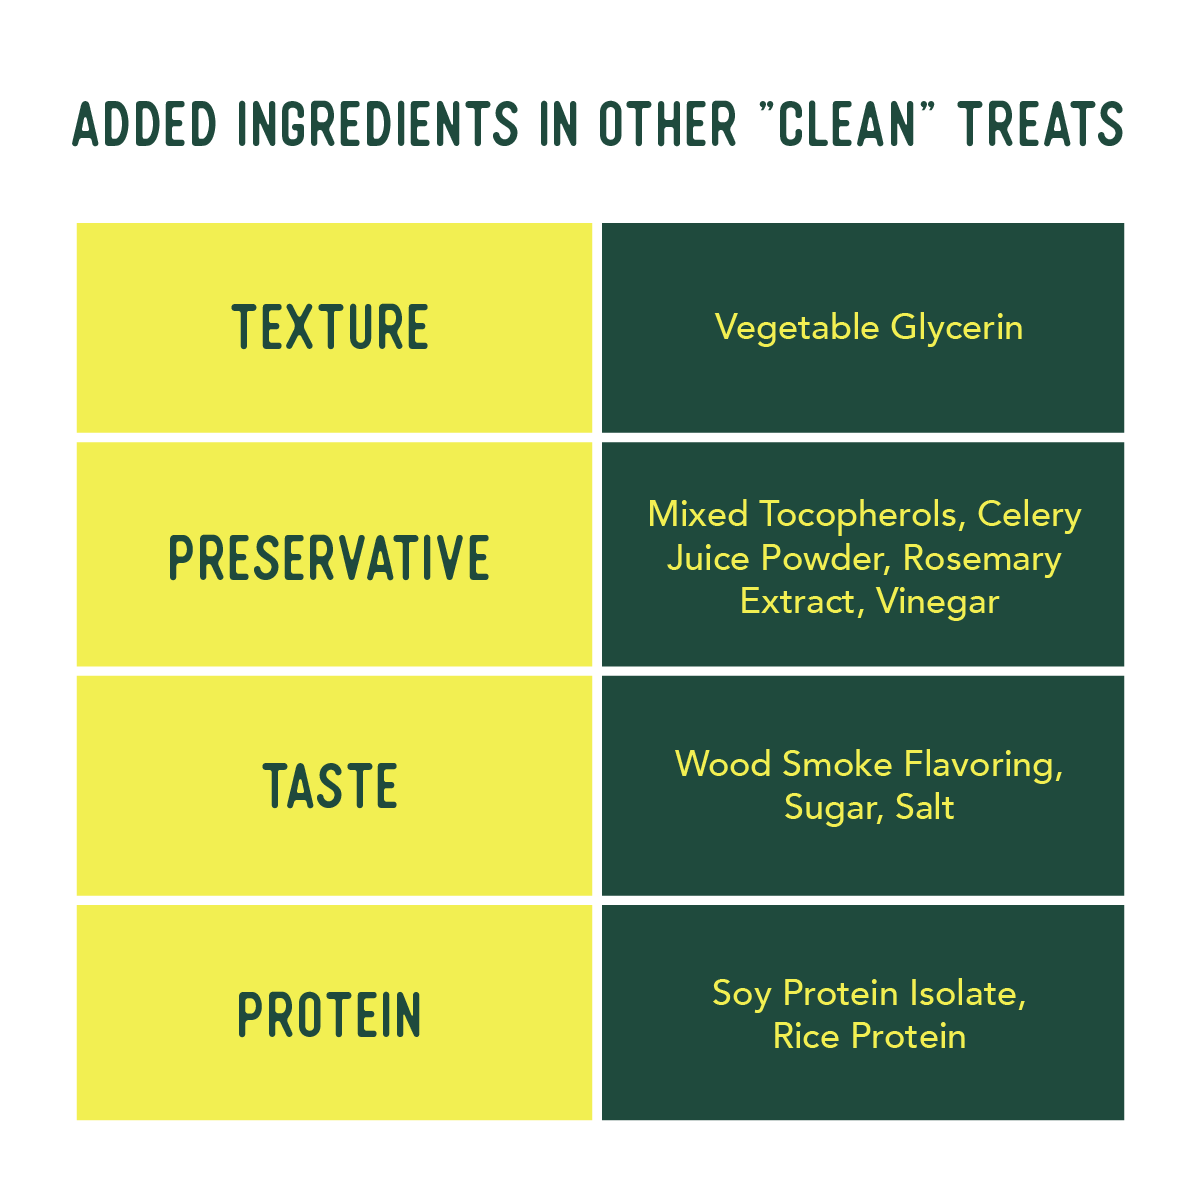 """Added Ingredients in other """"clean"""" treats. Texture: Vegetable glycerin. Preservative: Mixed tocopherols, Celery juice powder, Rosemary extract, Vinegar. Taste: Wood smoke flavoring, Sugar, Salt. Protein: Soy protein isolate, Rice protein."""